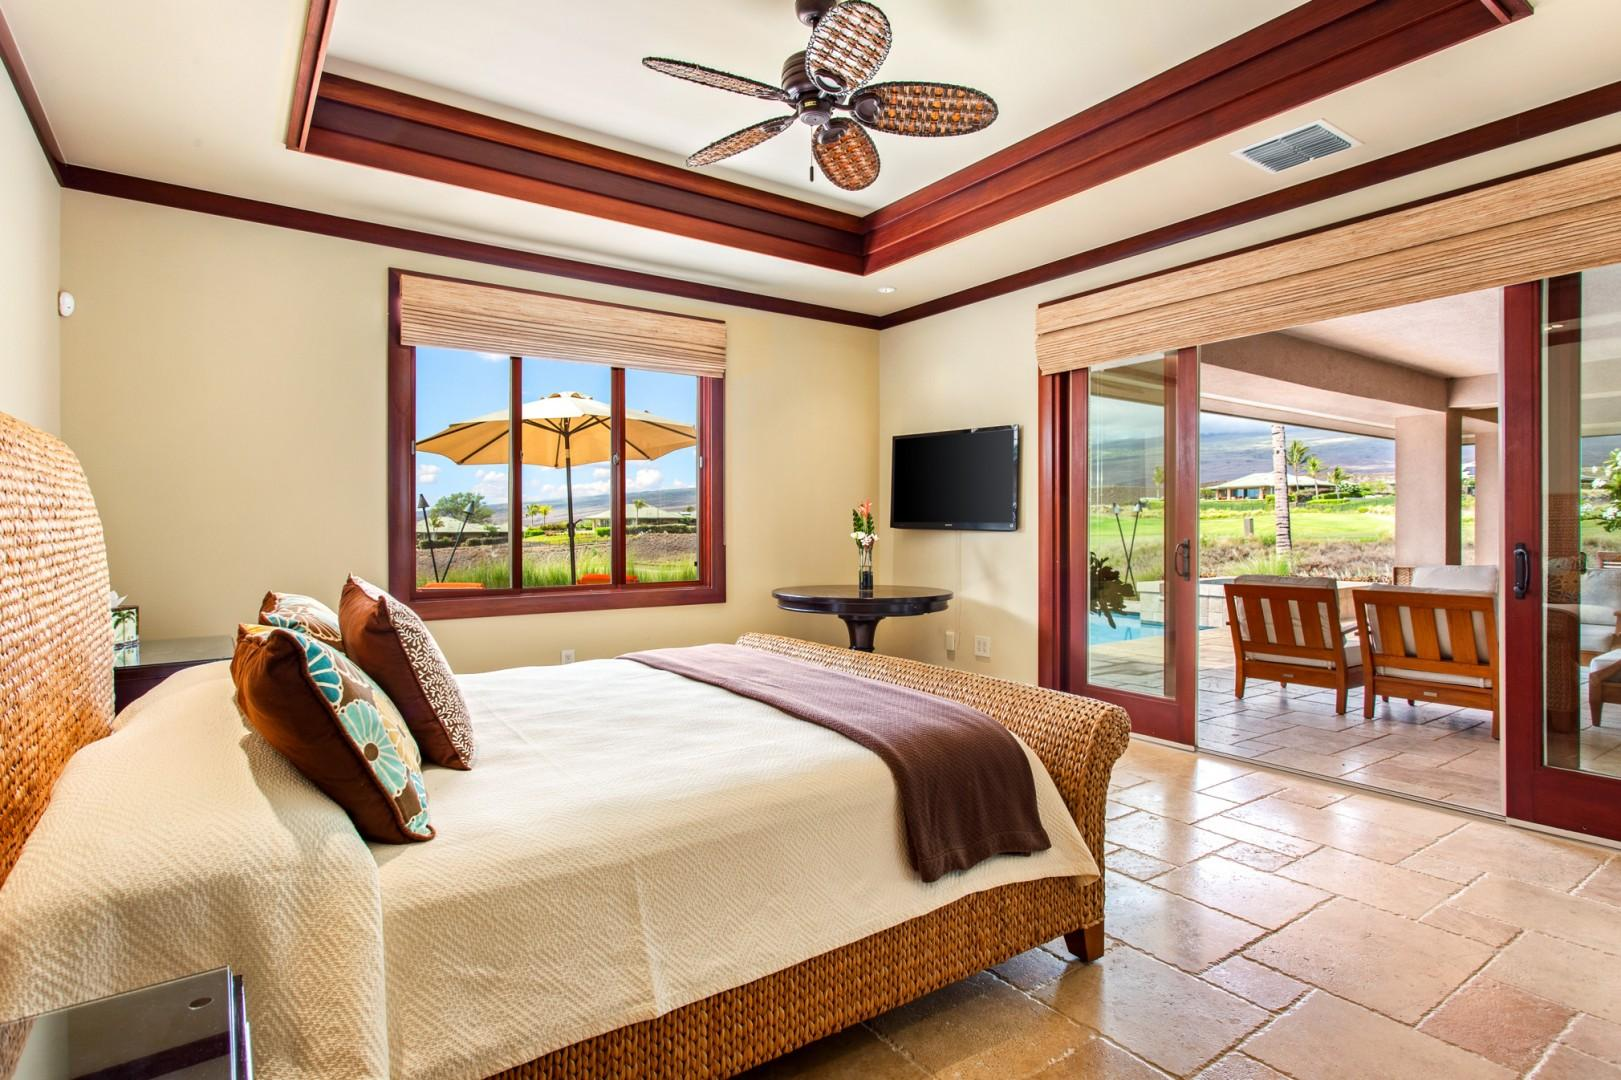 Master bedroom suite #1 offers a king bed, lanai access, and en-suite bath.